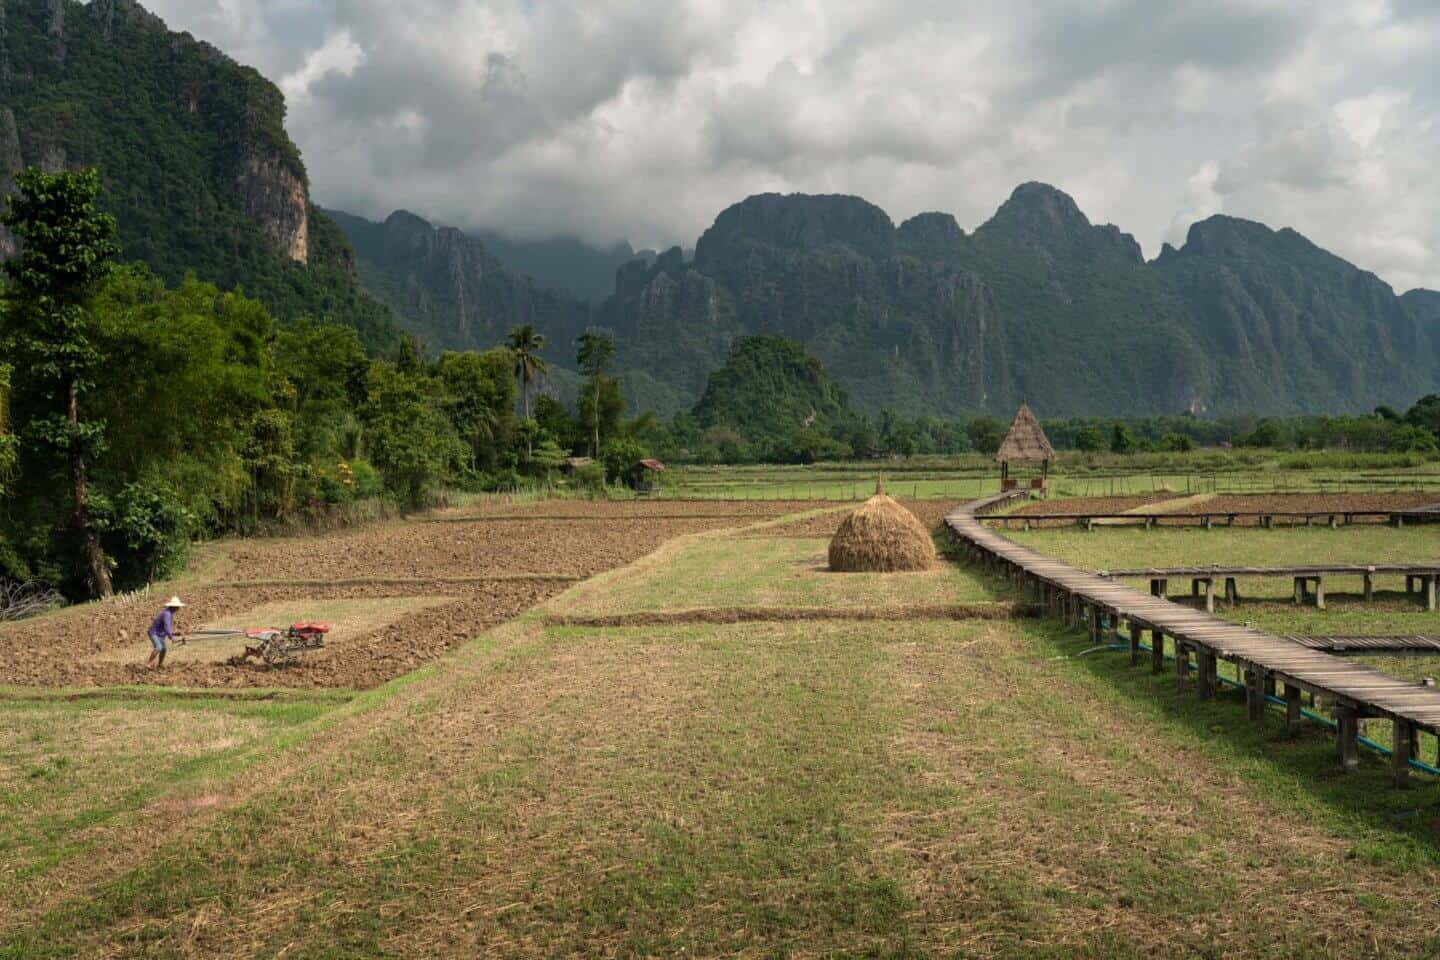 A photo of the rice fields in Vang Vieng during dry season in Laos